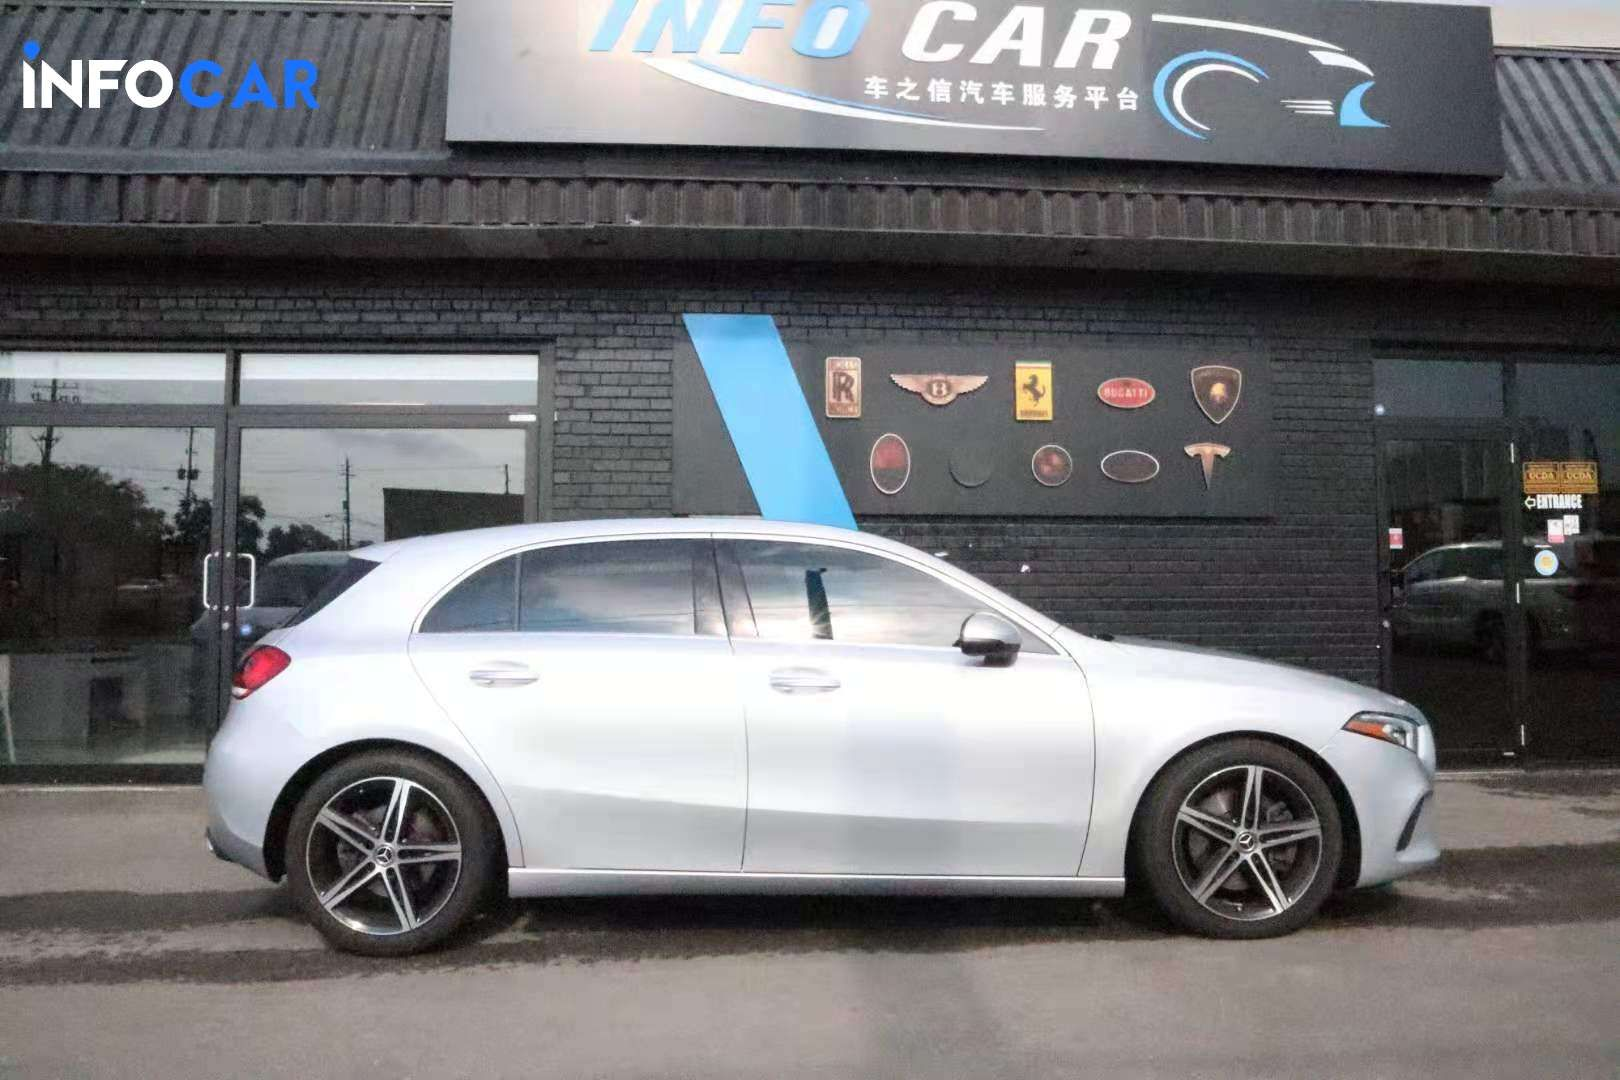 2019 Mercedes-Benz A-Class 250 hatchback - INFOCAR - Toronto's Most Comprehensive New and Used Auto Trading Platform